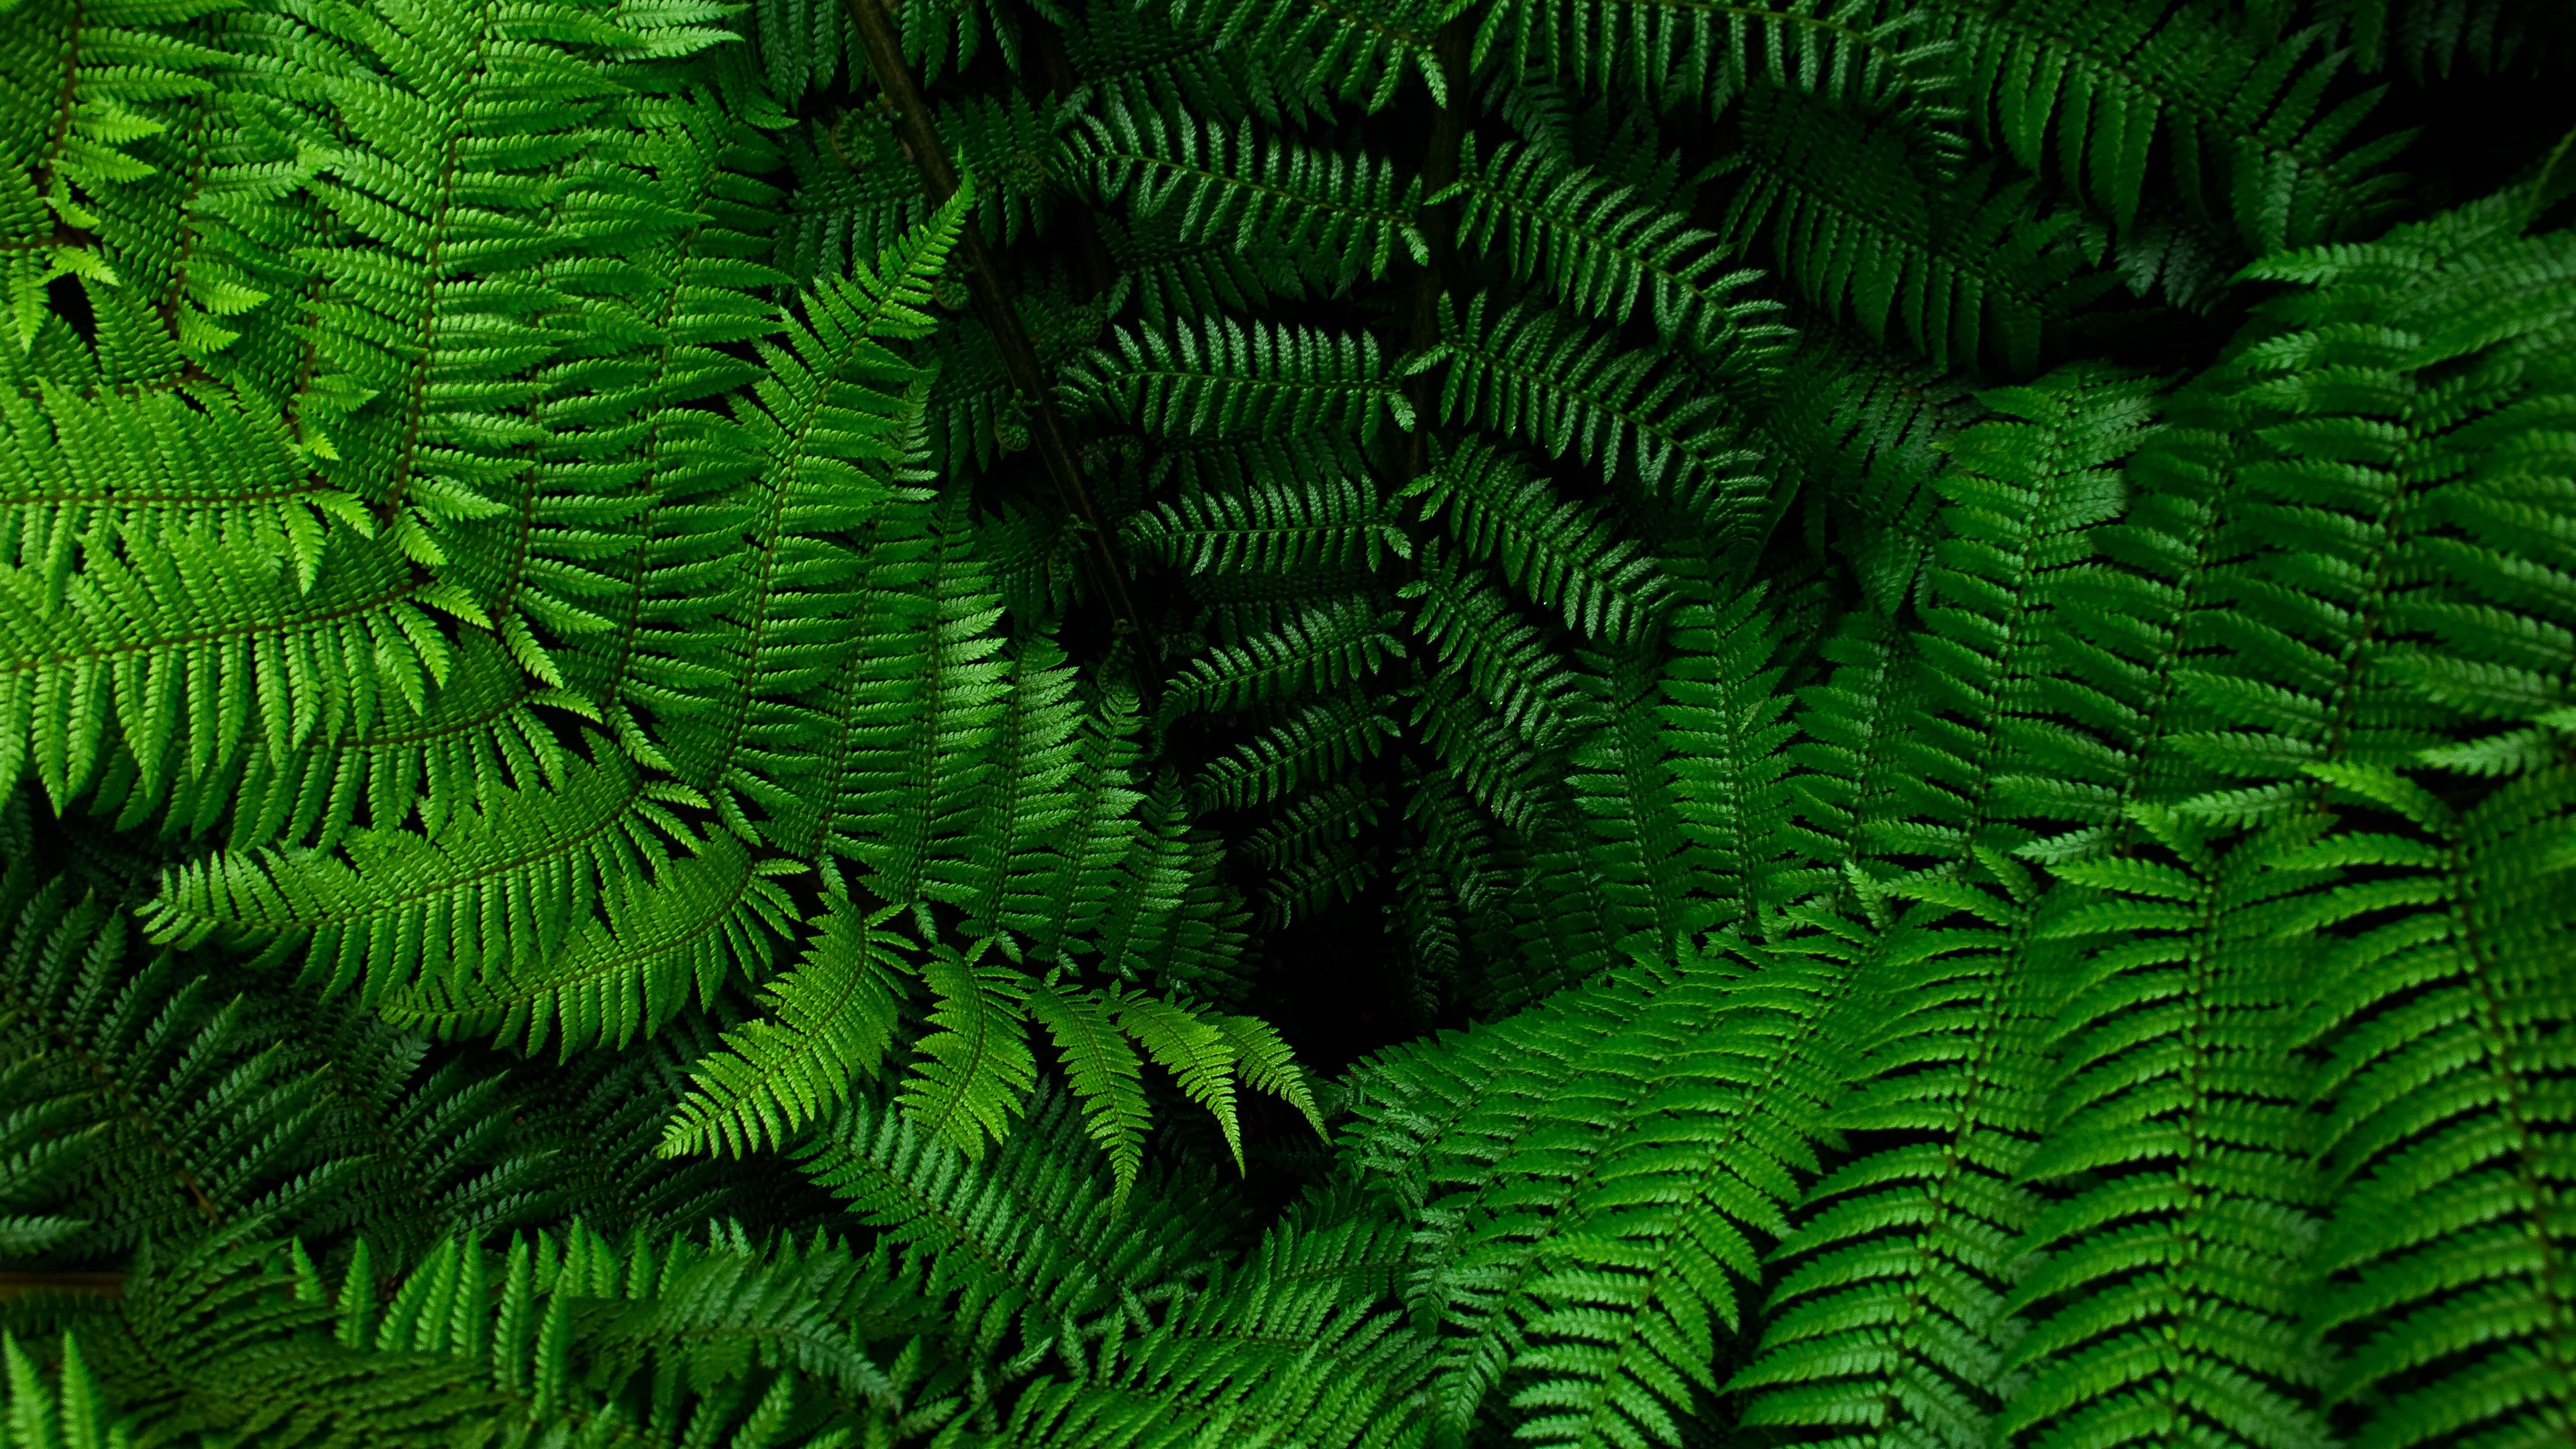 Wallpaper Fern Green Leaves Plants 5120x2880 Uhd 5k